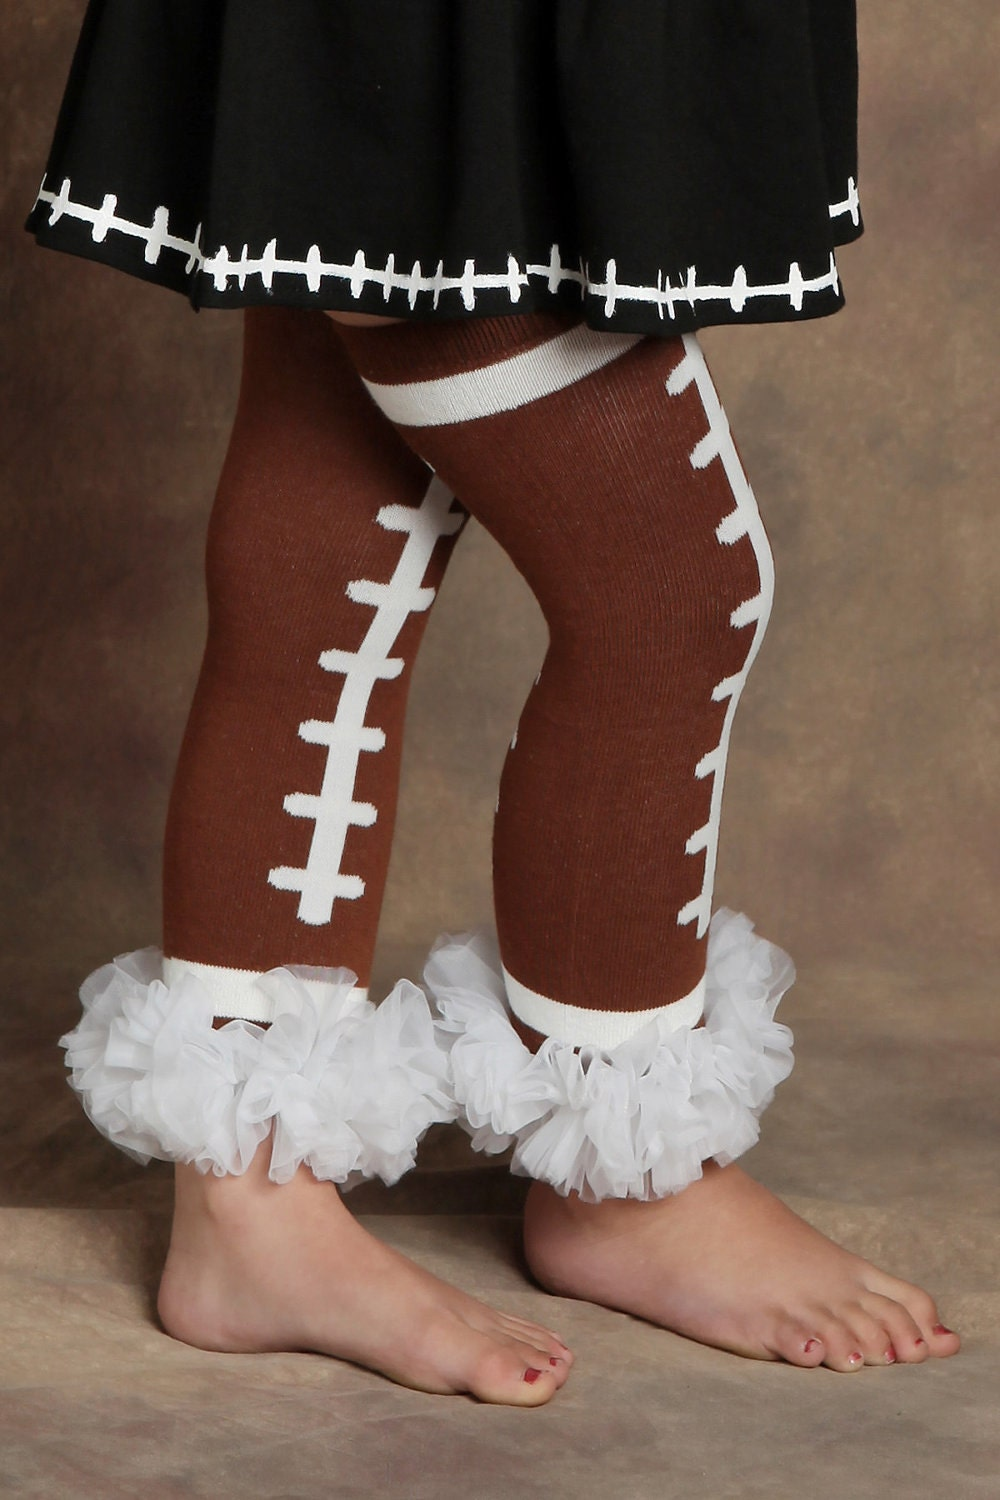 Girly Football Pettilegs Ruffled Legwarmers - U Pick Ruffle Color